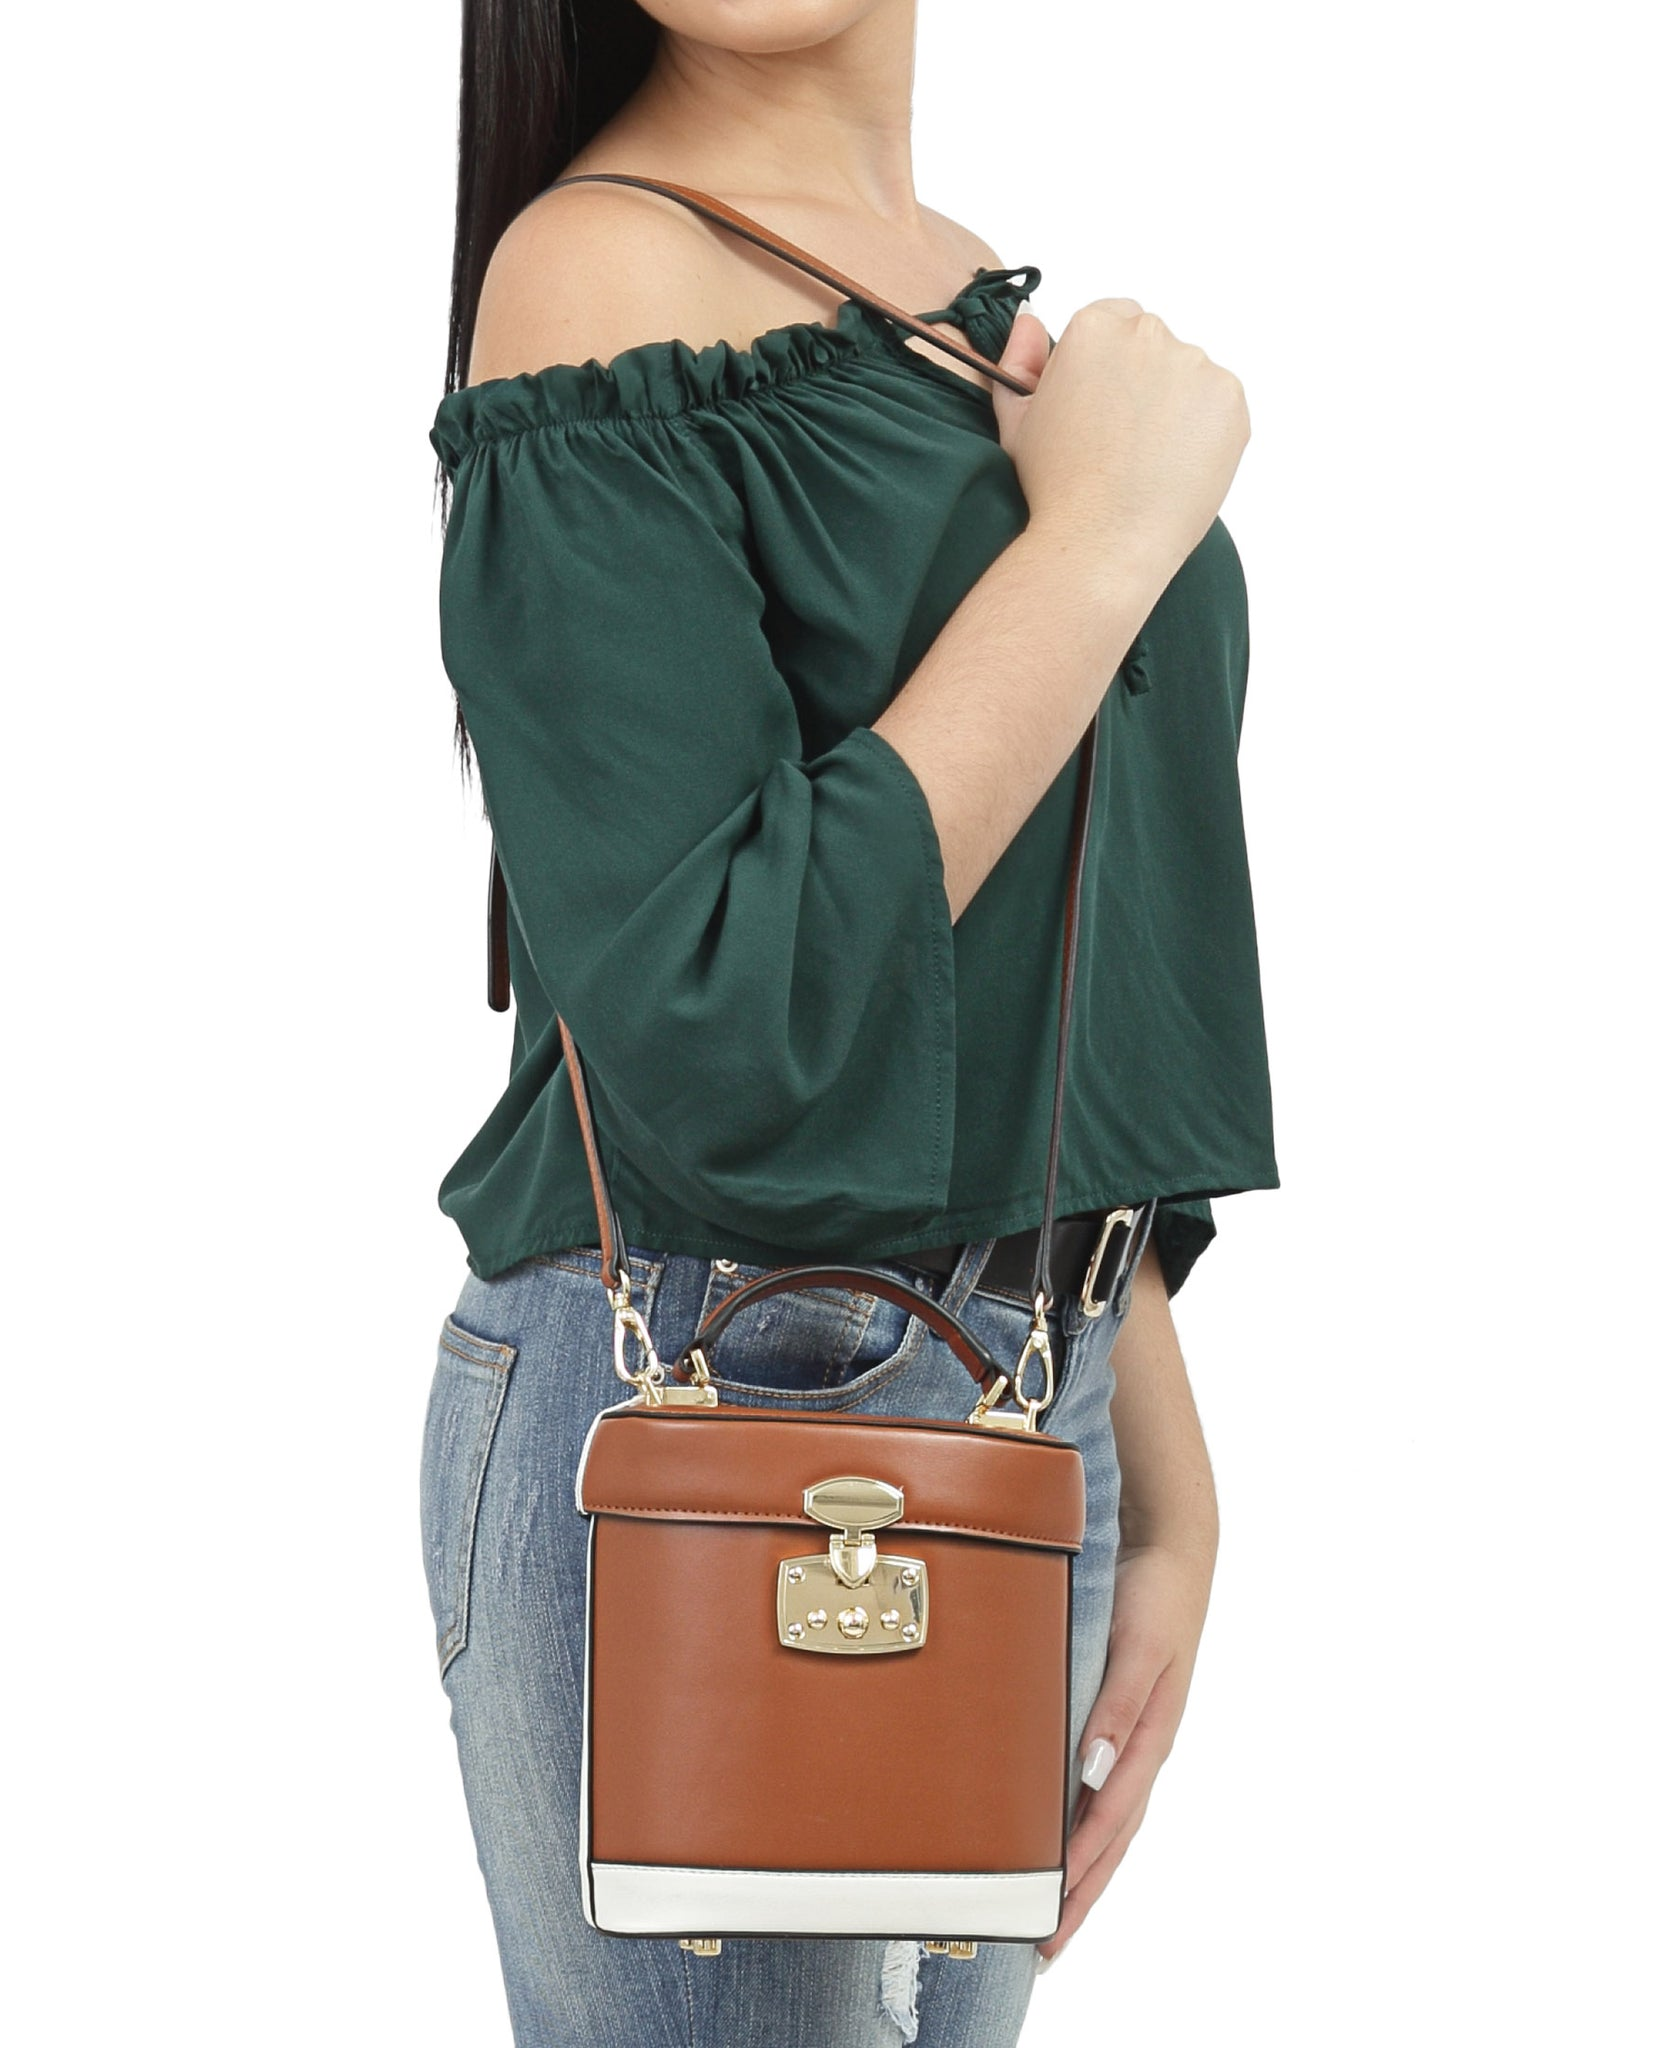 Genuine Leather Bucket Bag - Tan